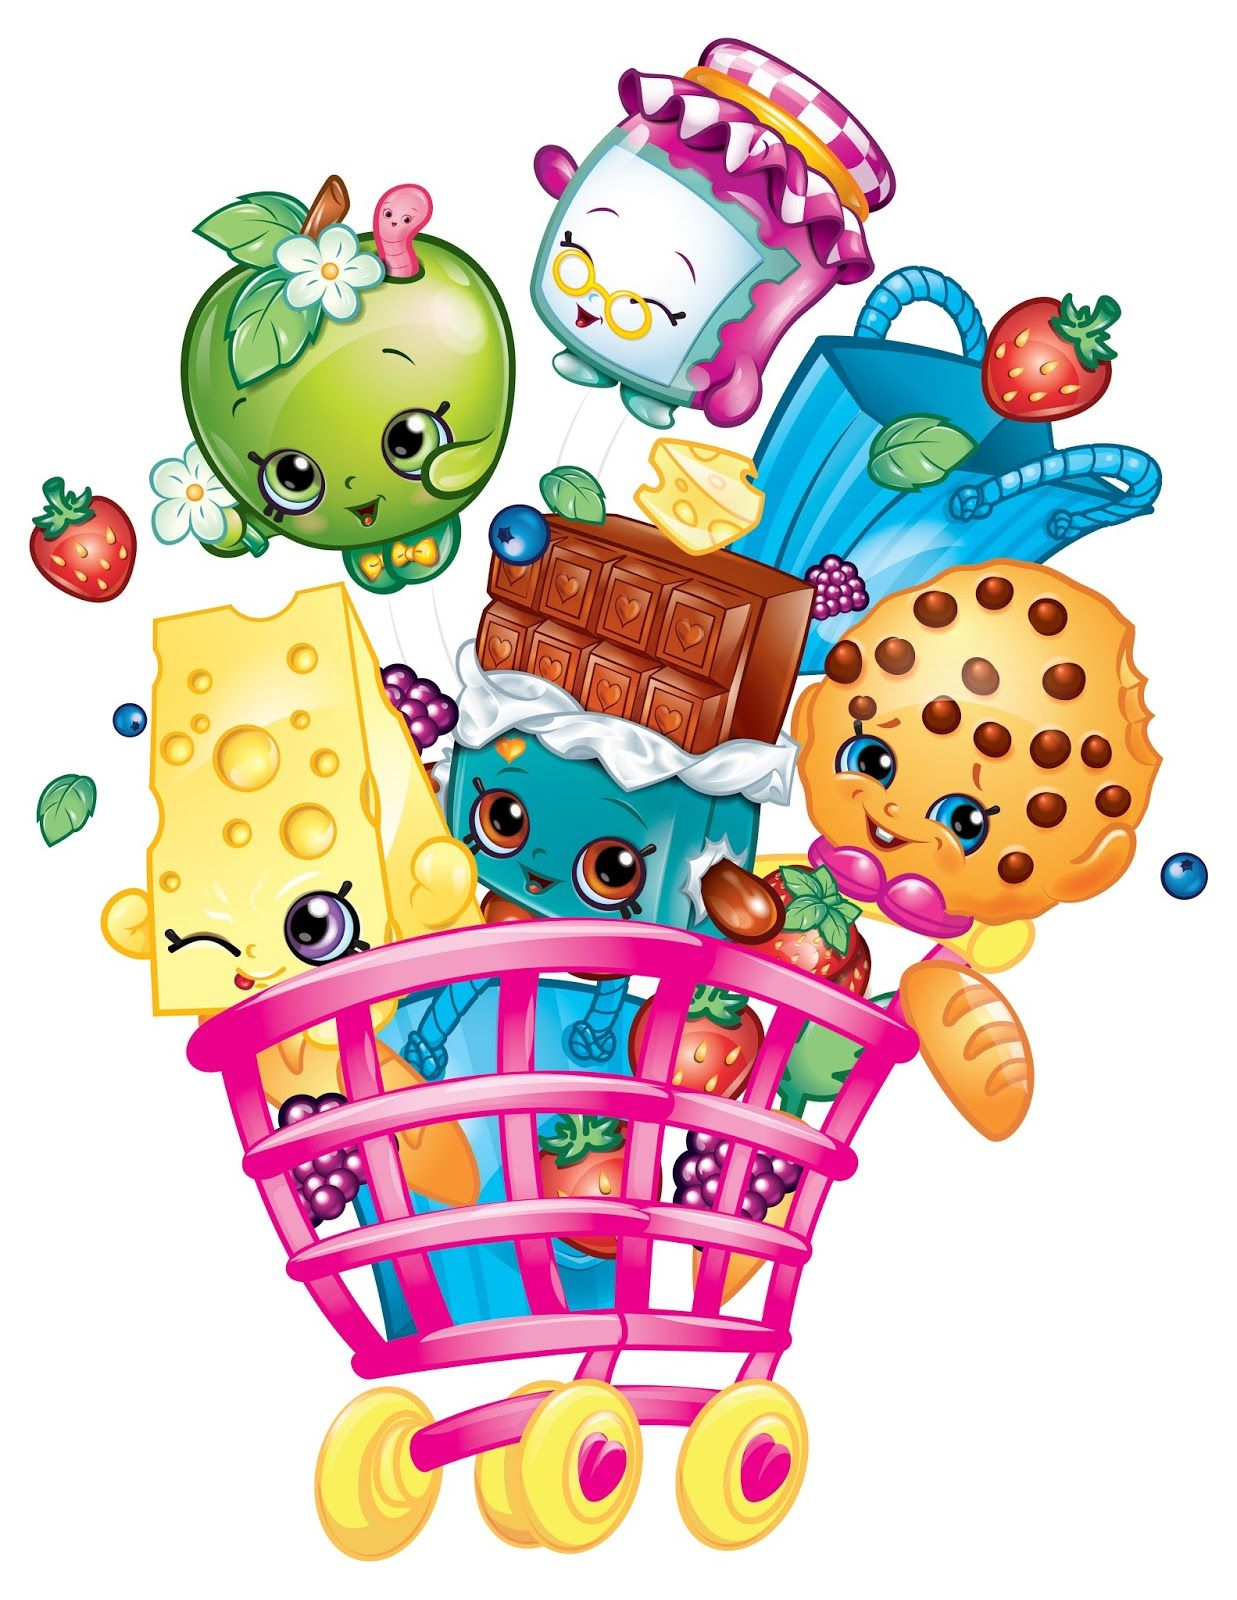 10 Mewarnai Gambar Shopkins Shopkins Party Shopkins Party Decorations Shopkins Birthday Party